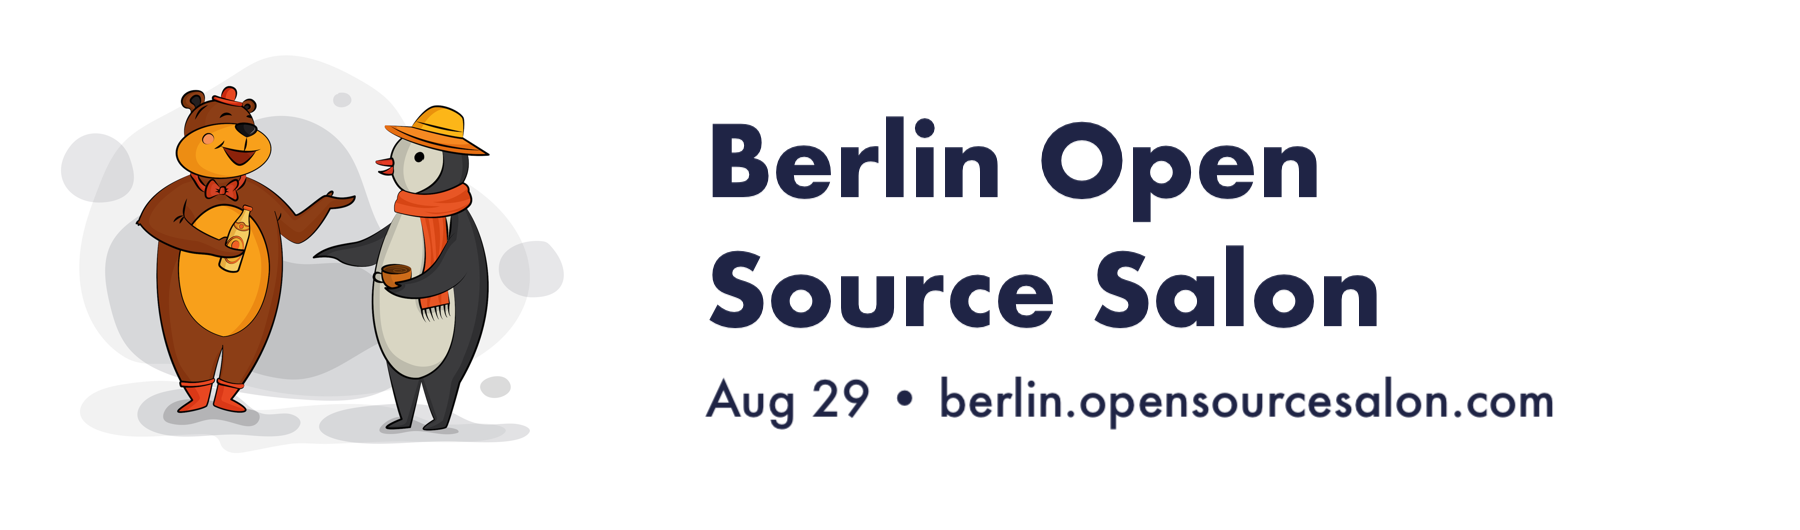 Berlin Open Source Salon 2019